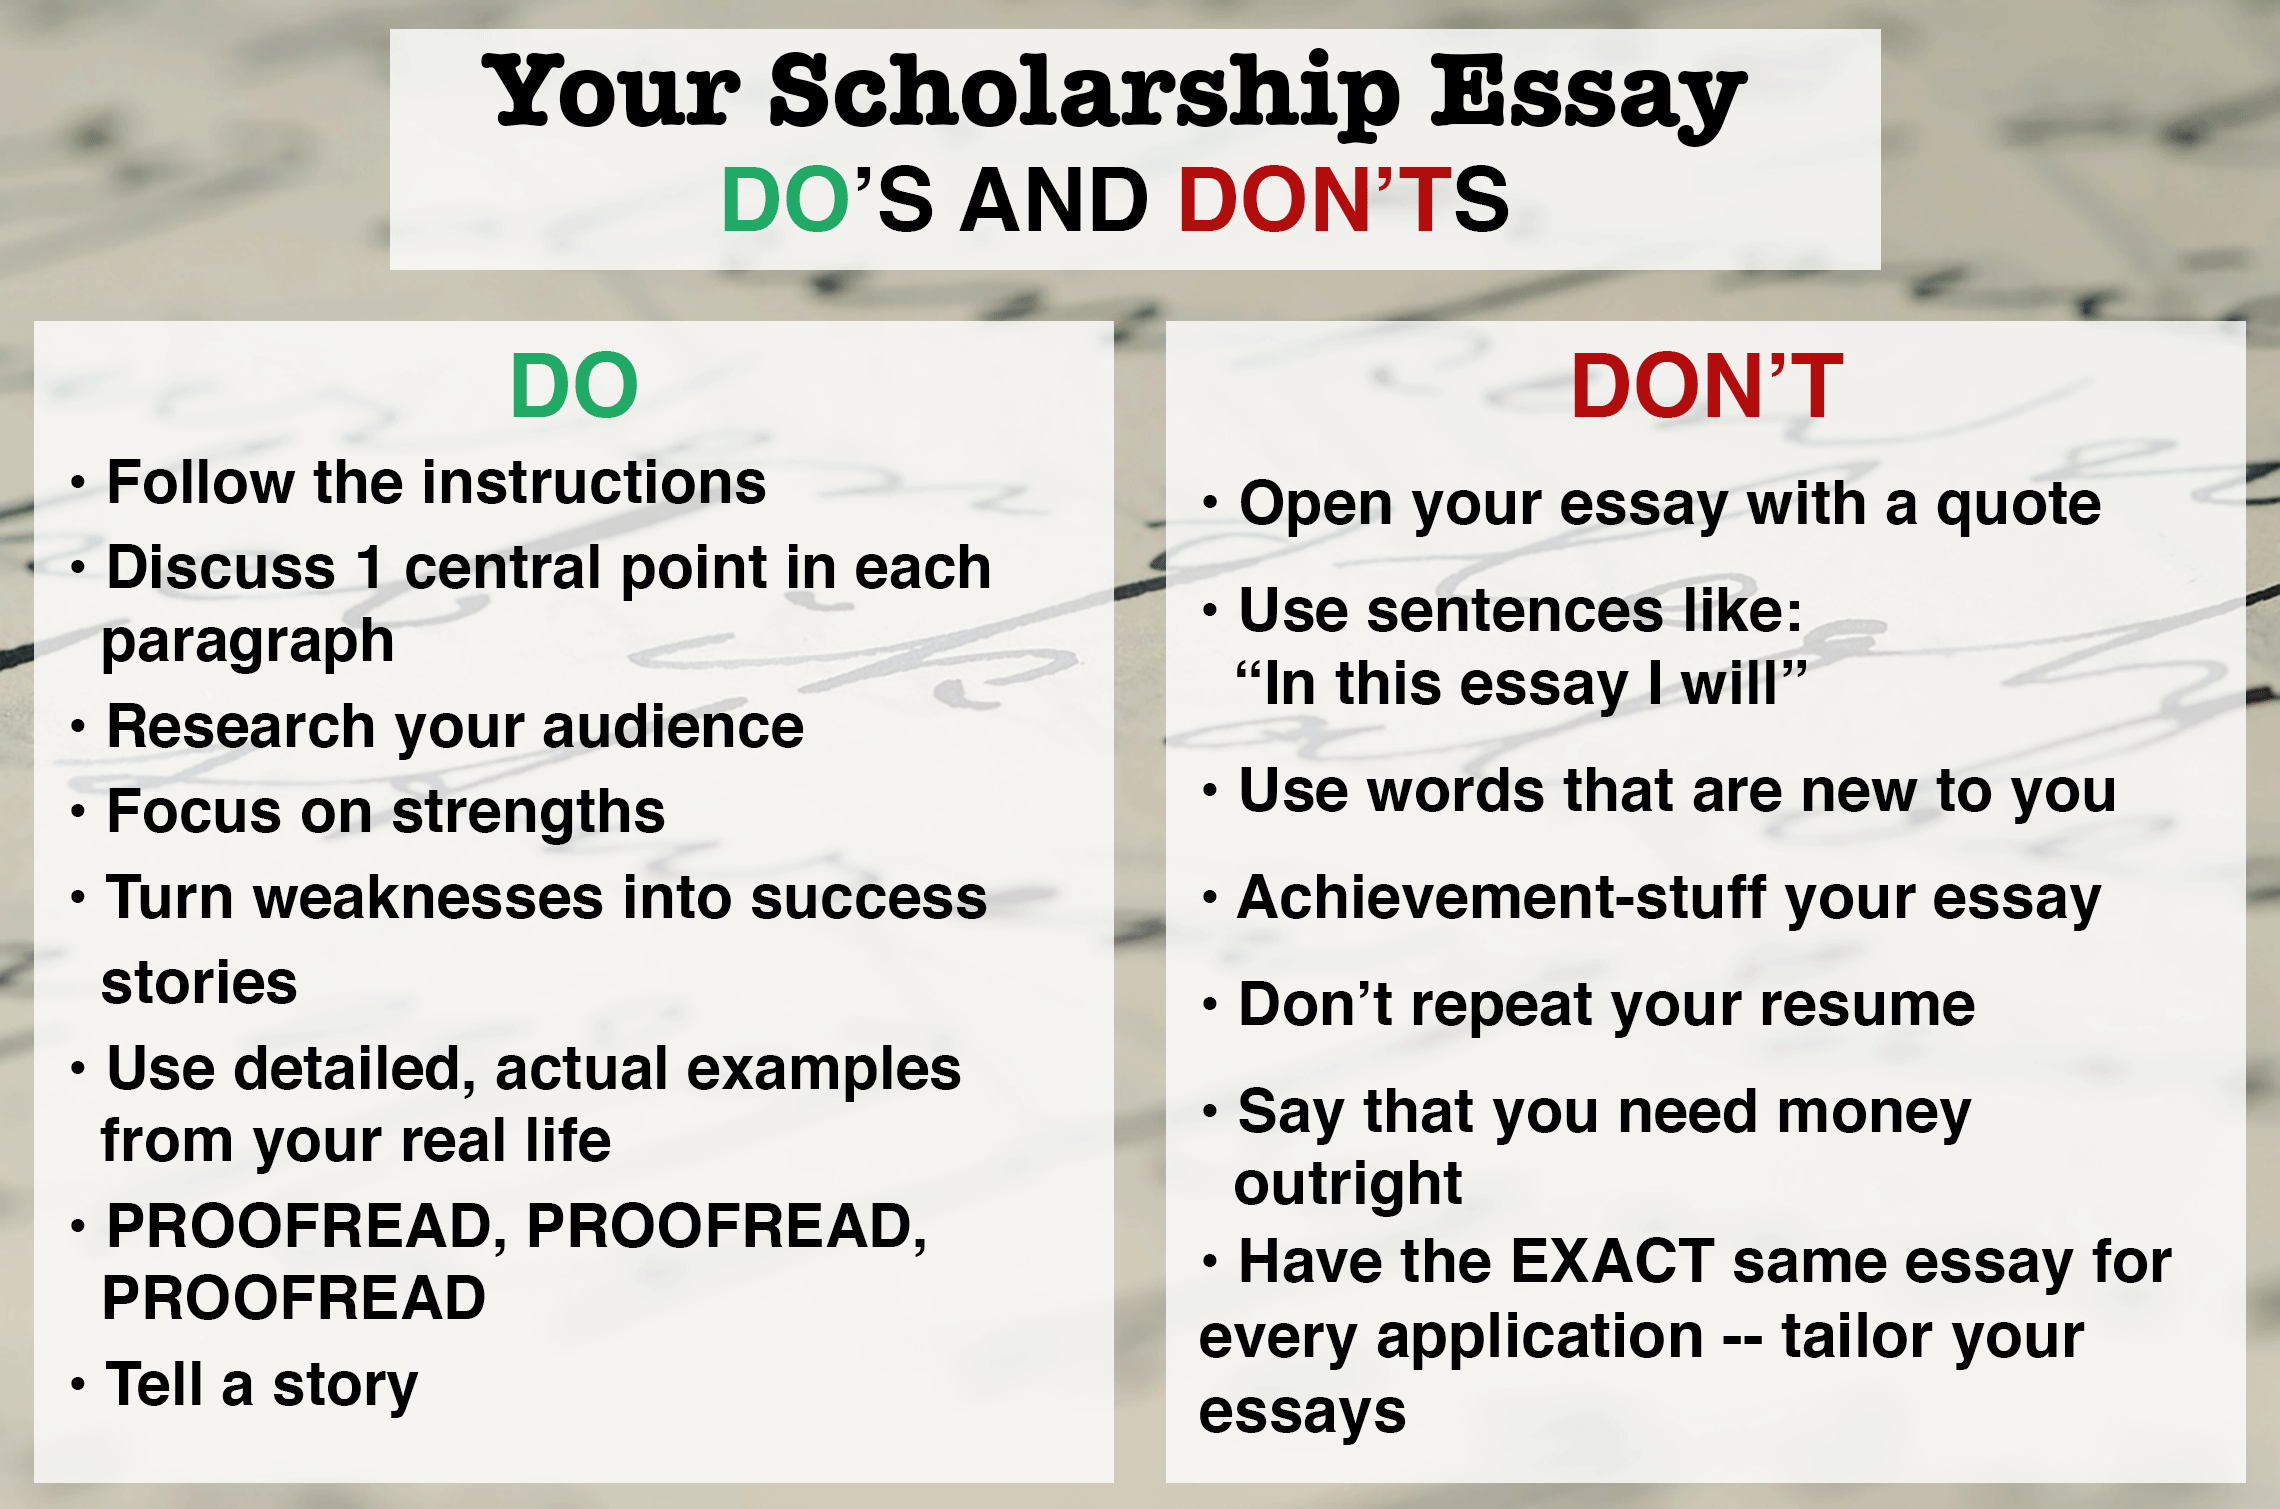 Who is the essay helper, and where can you find one?